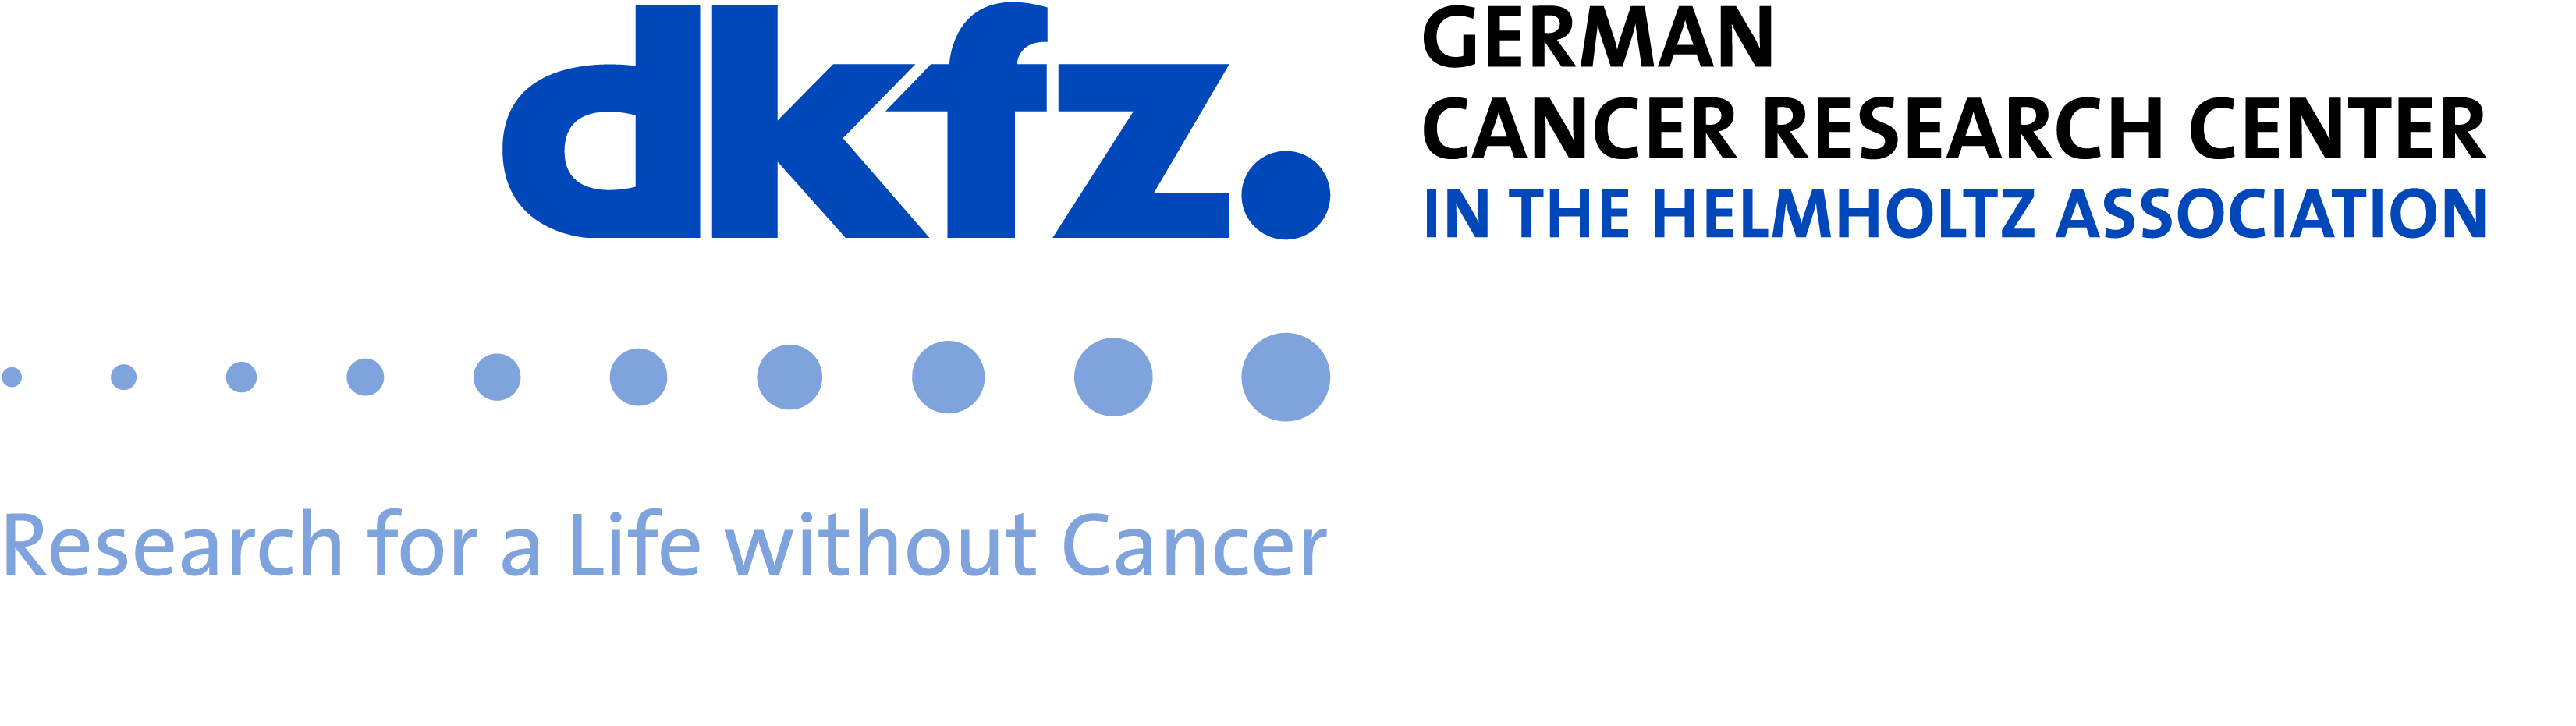 Logo DKFZ German Cancer Research Center